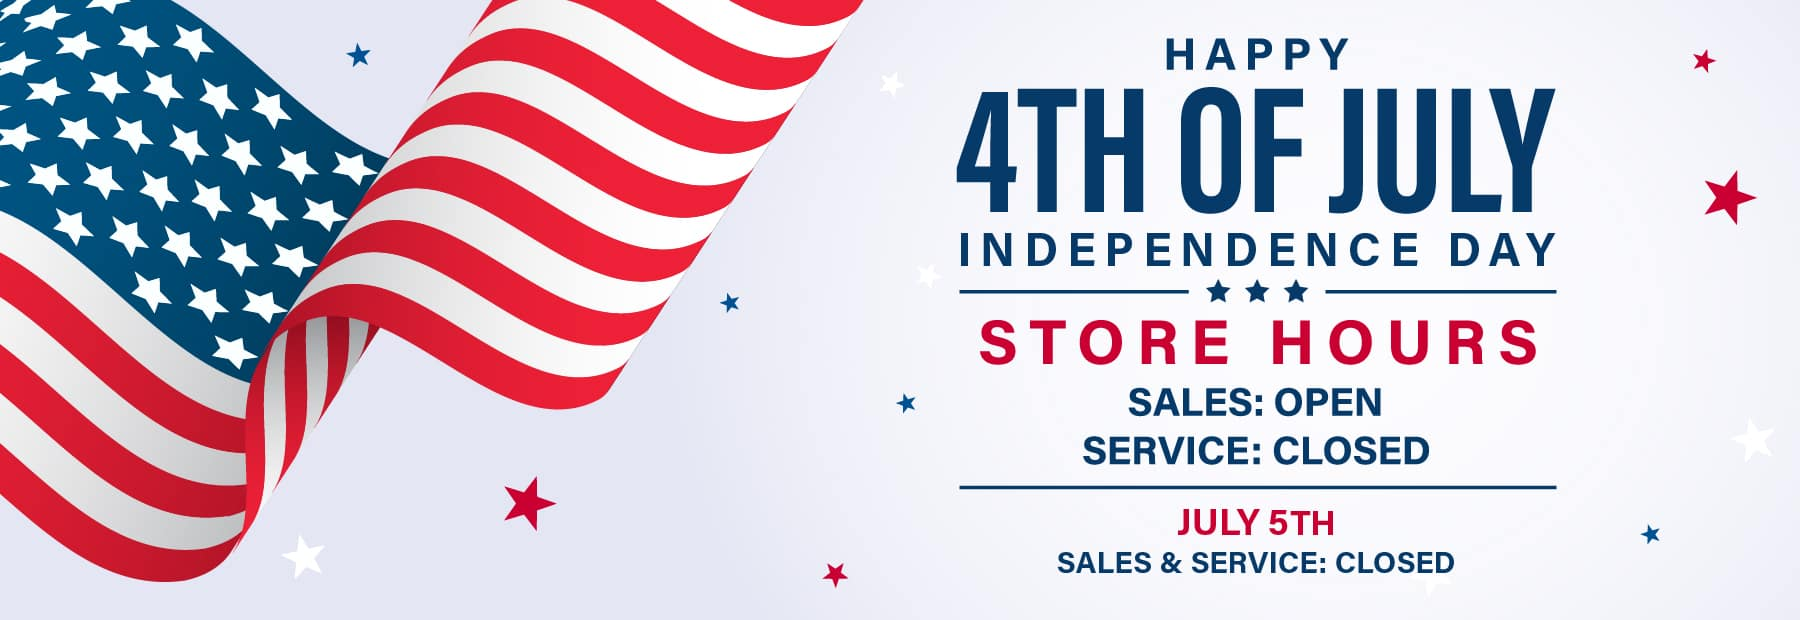 July 4th Hours of Operation: July 4th - Sales Open. Service Closed. July 5th - Sales and Service Closed